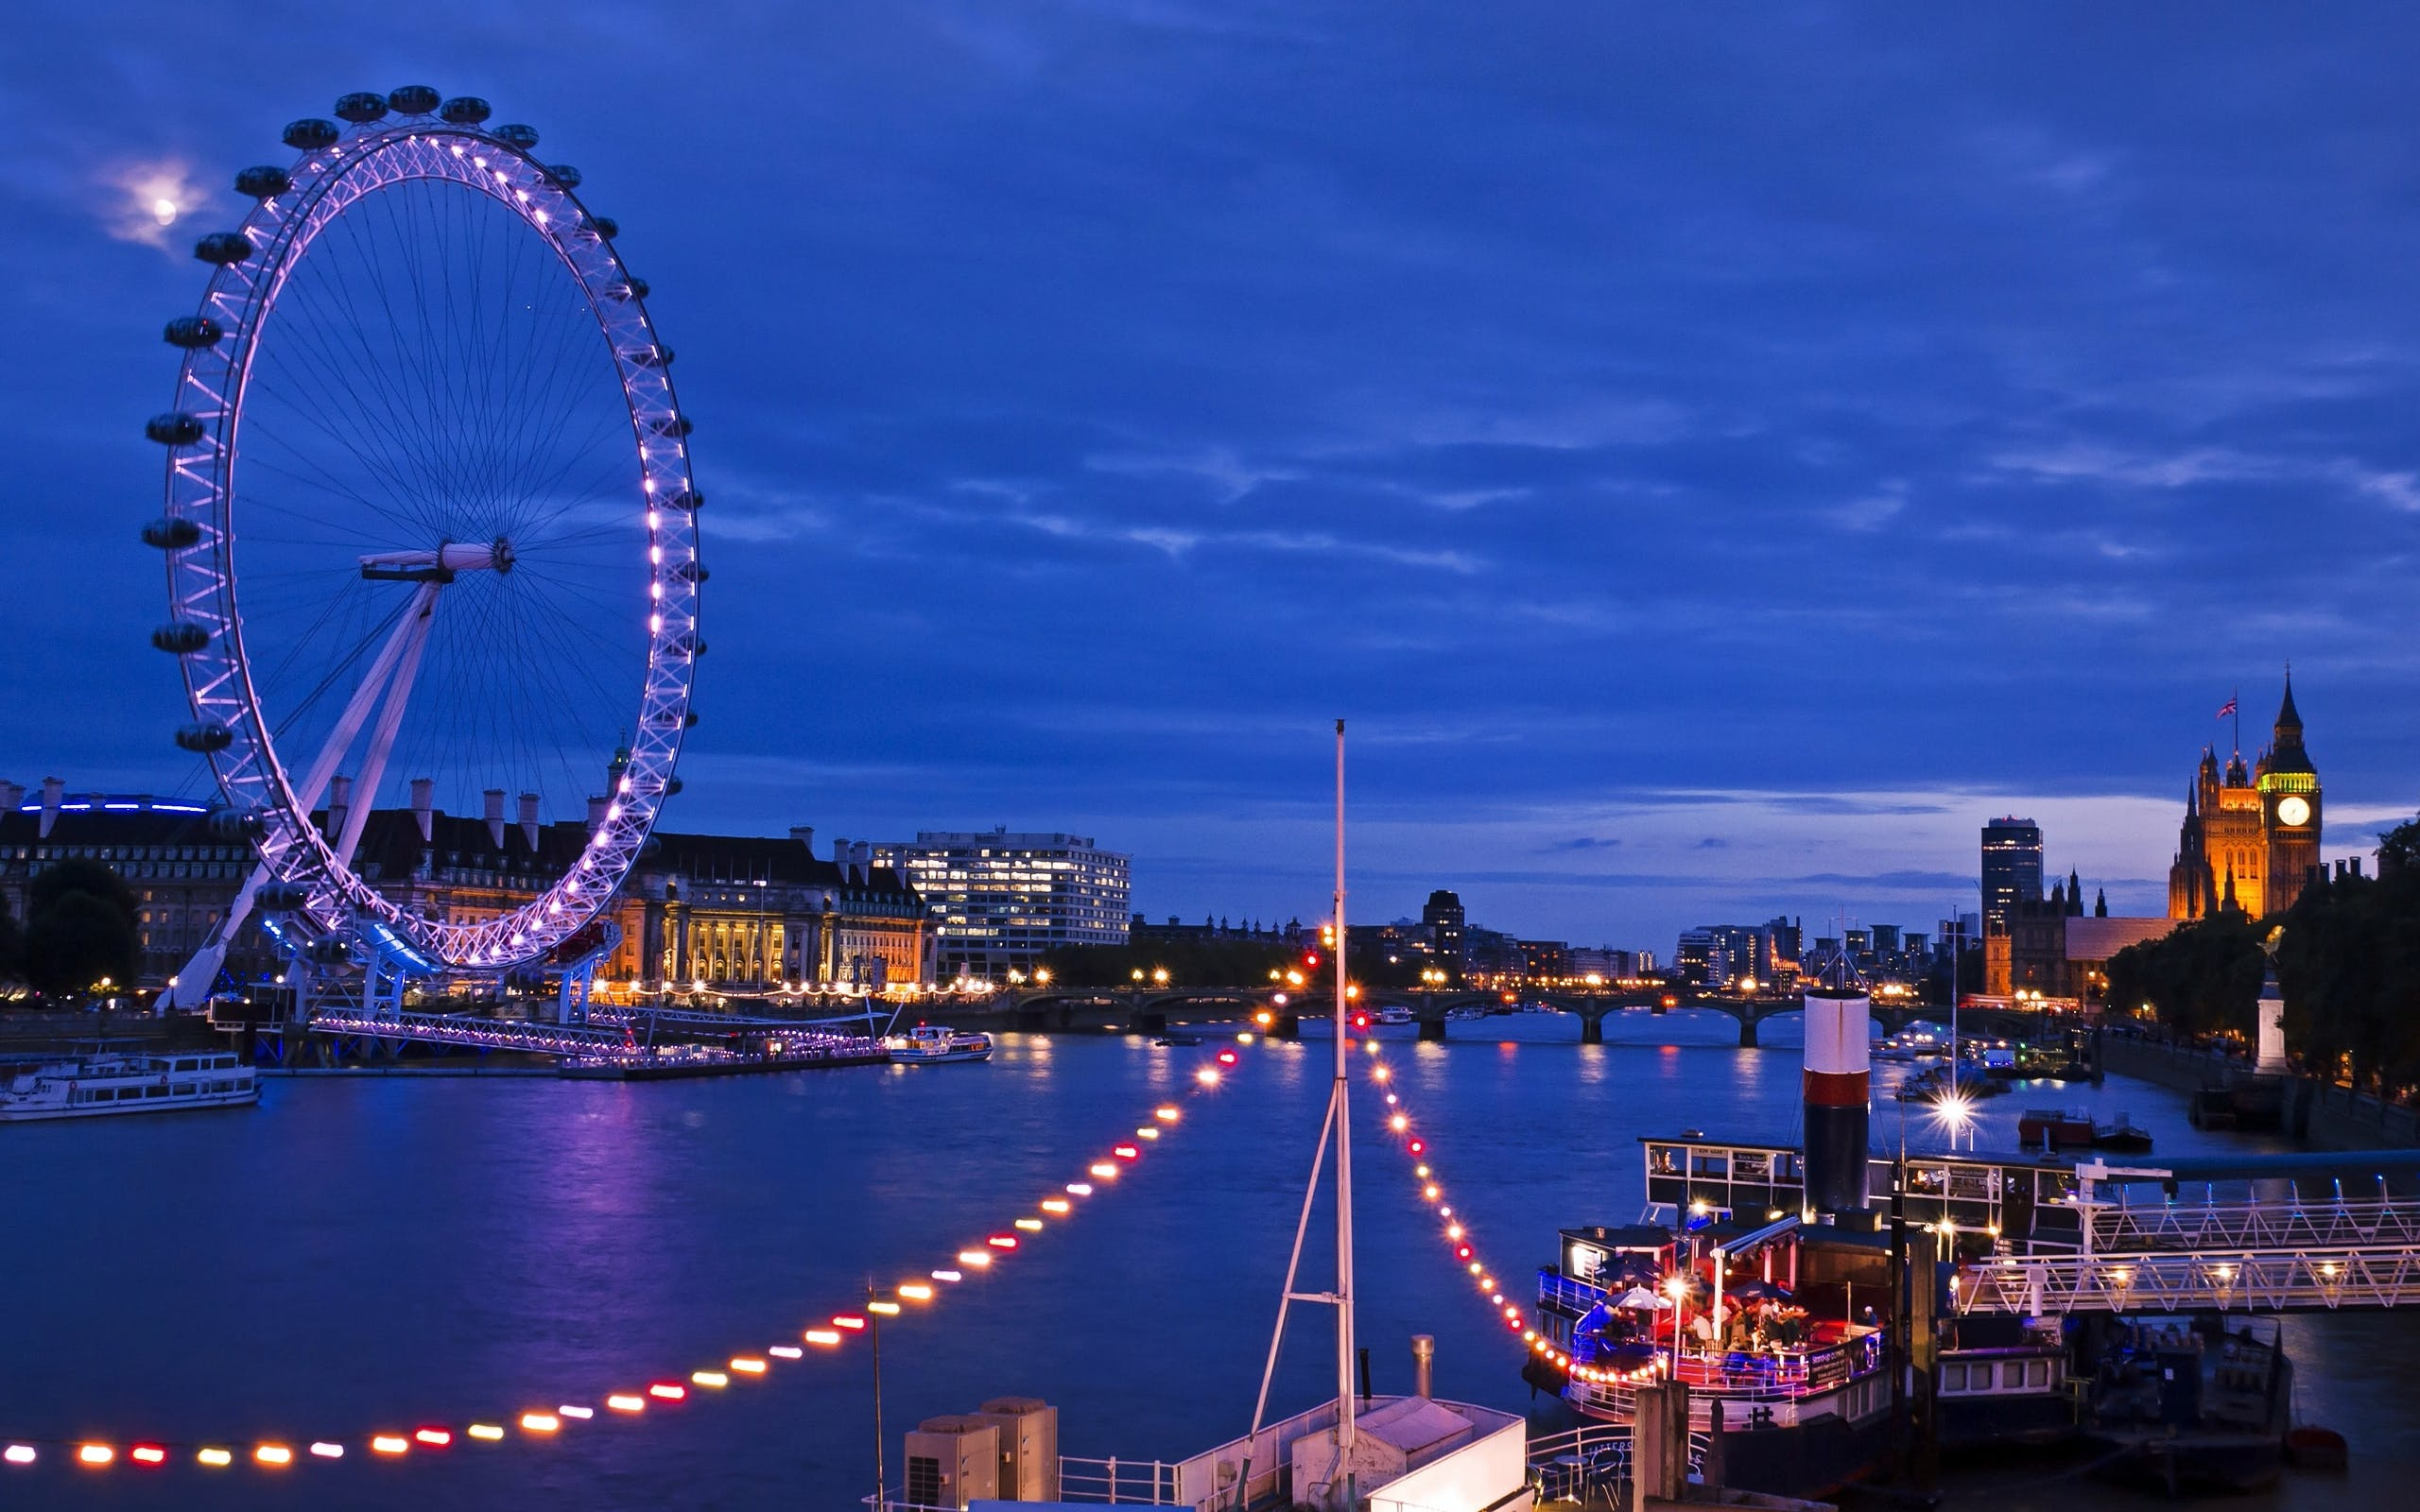 london eye champagne experience including fast track access-3